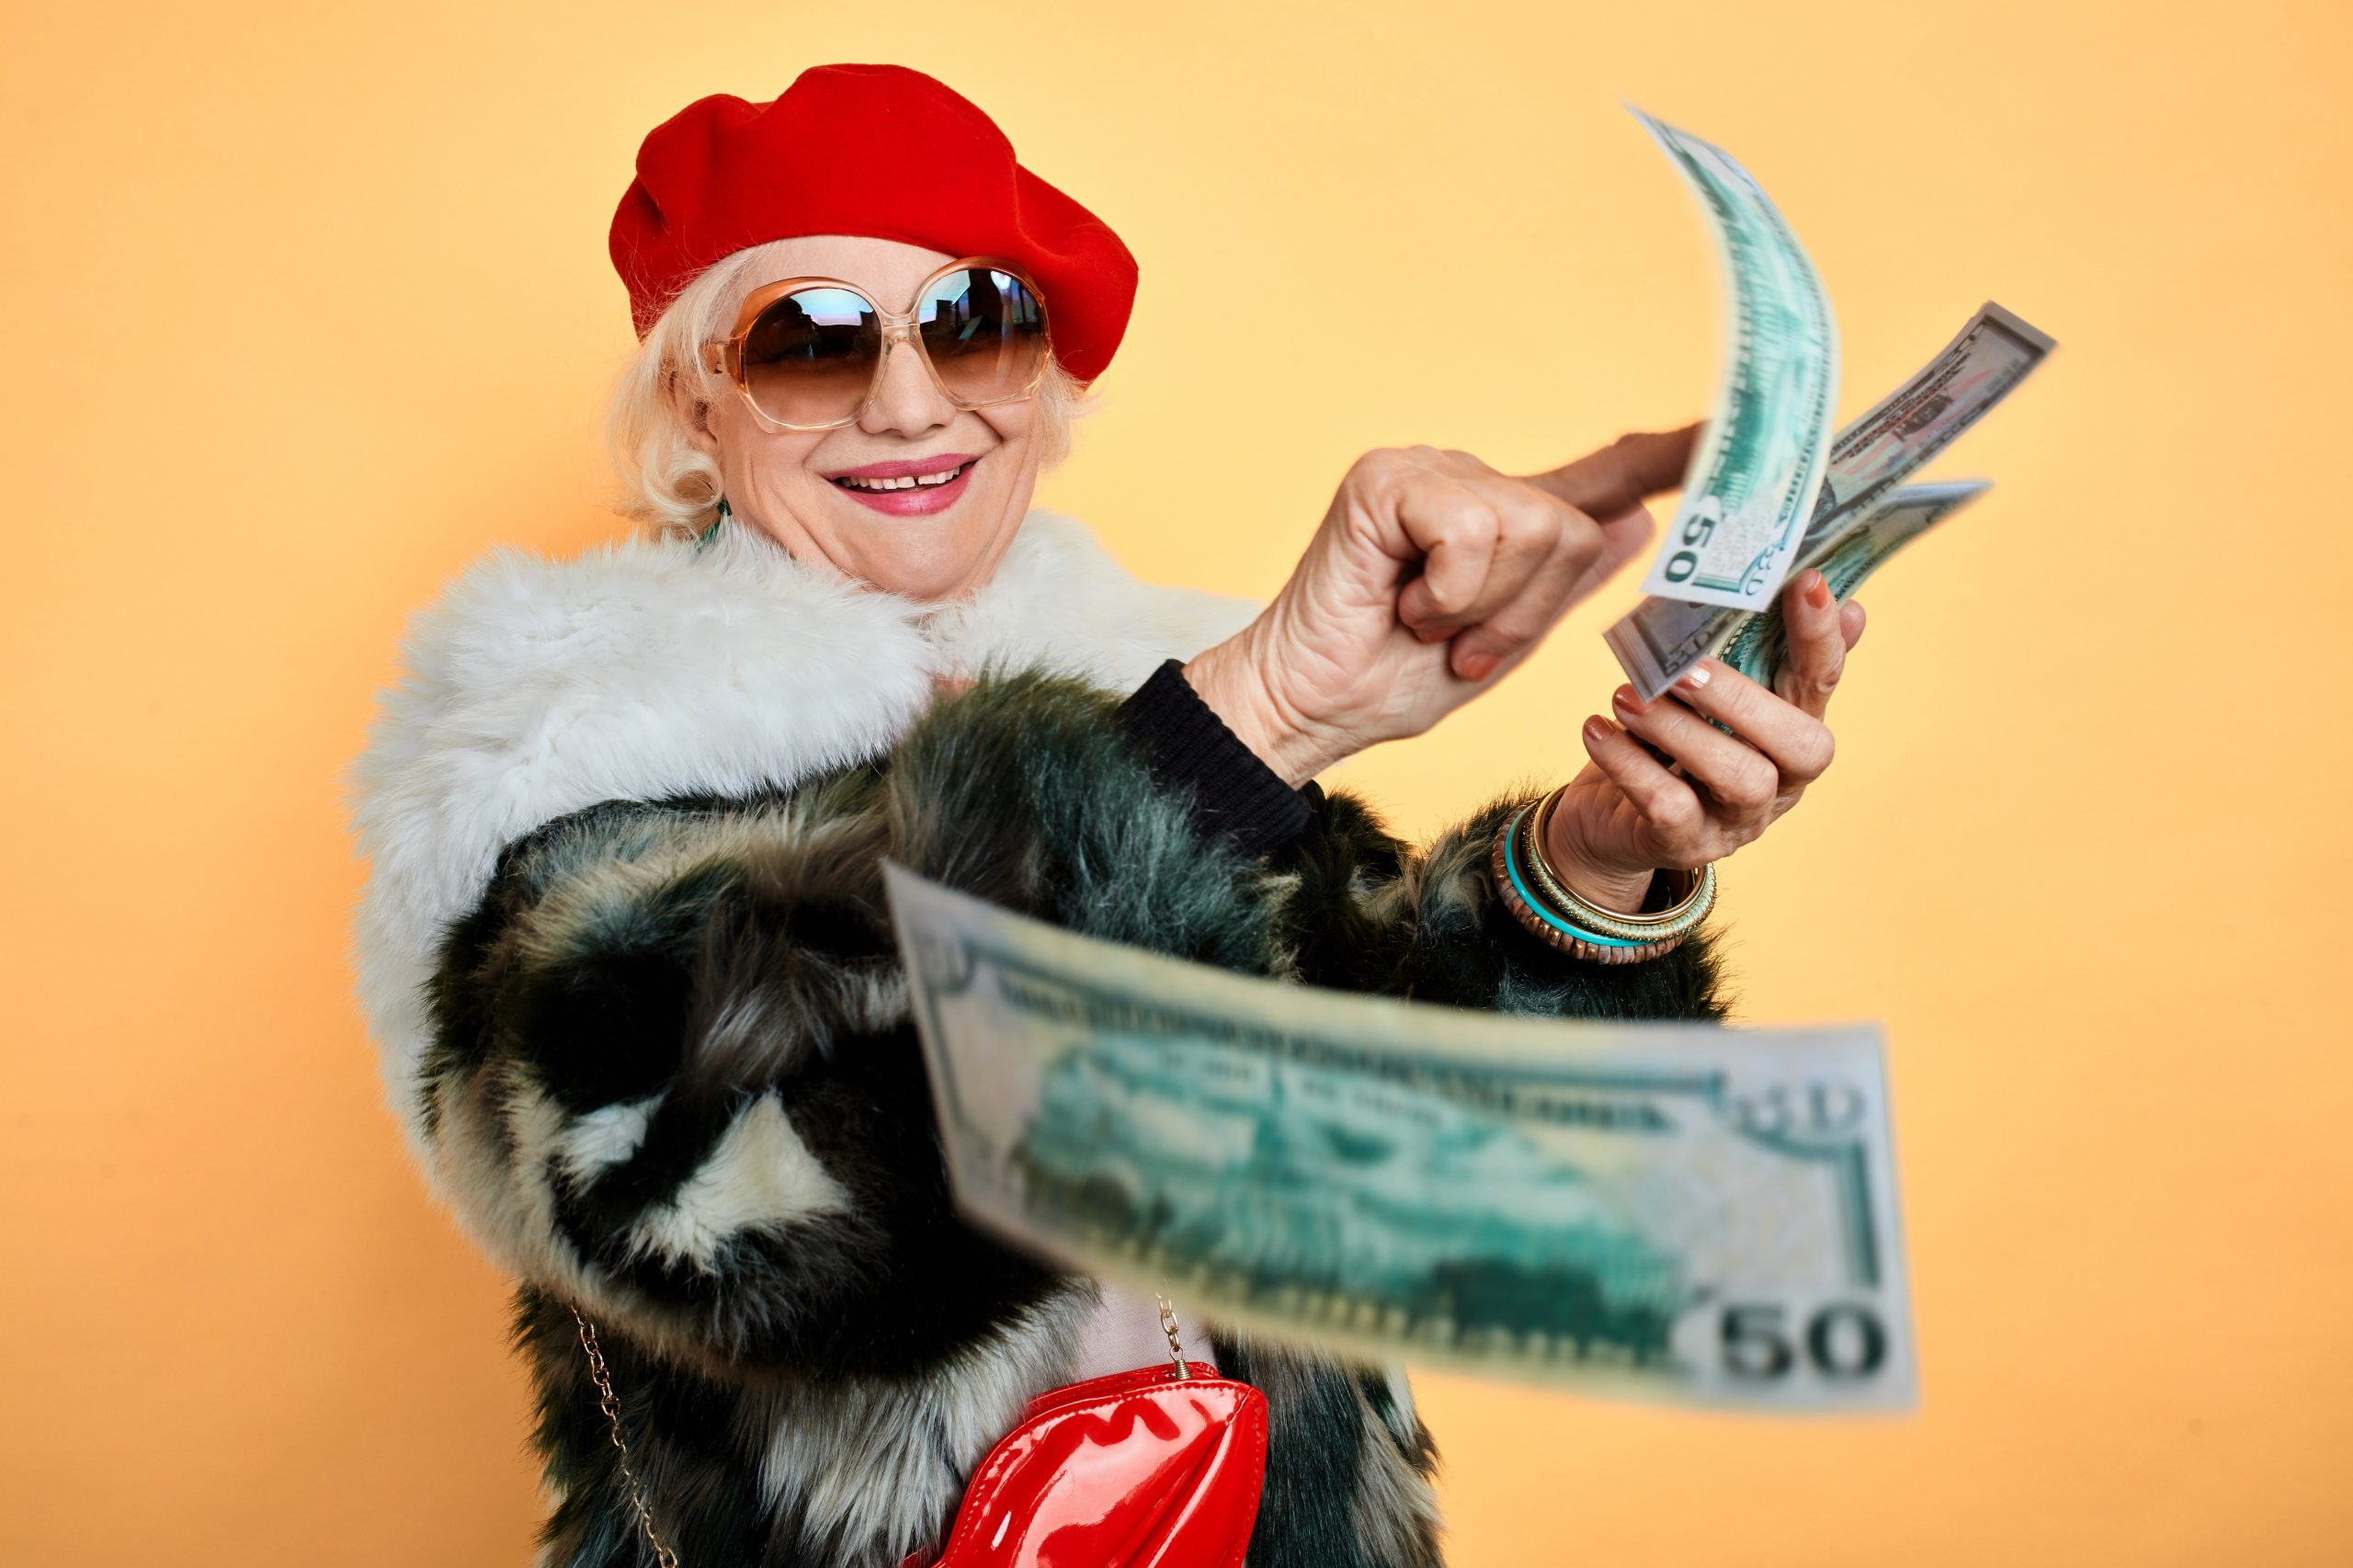 Older Lady with large sunglasses gleefully counting dollar bills